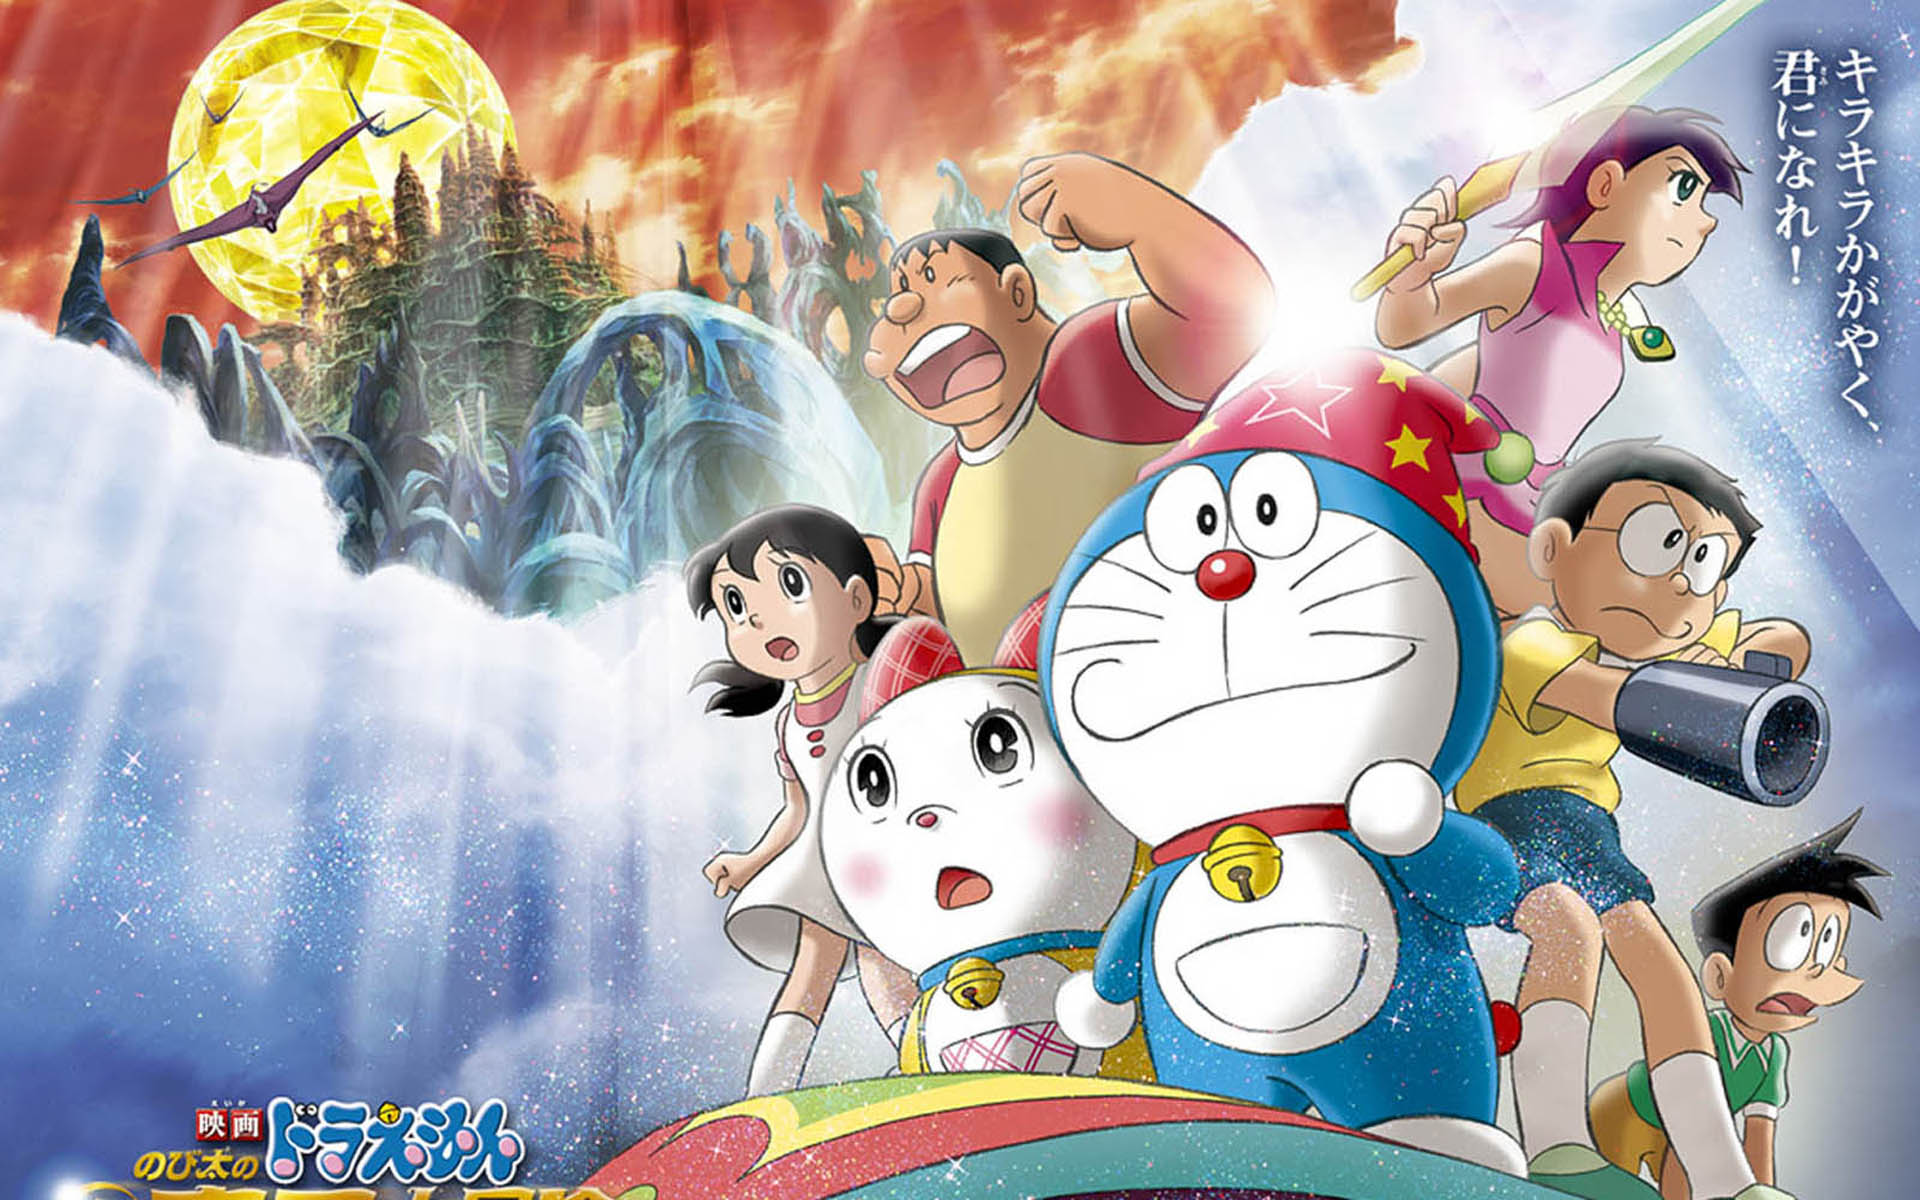 Doraemon Cartoon - Doraemon Cartoon